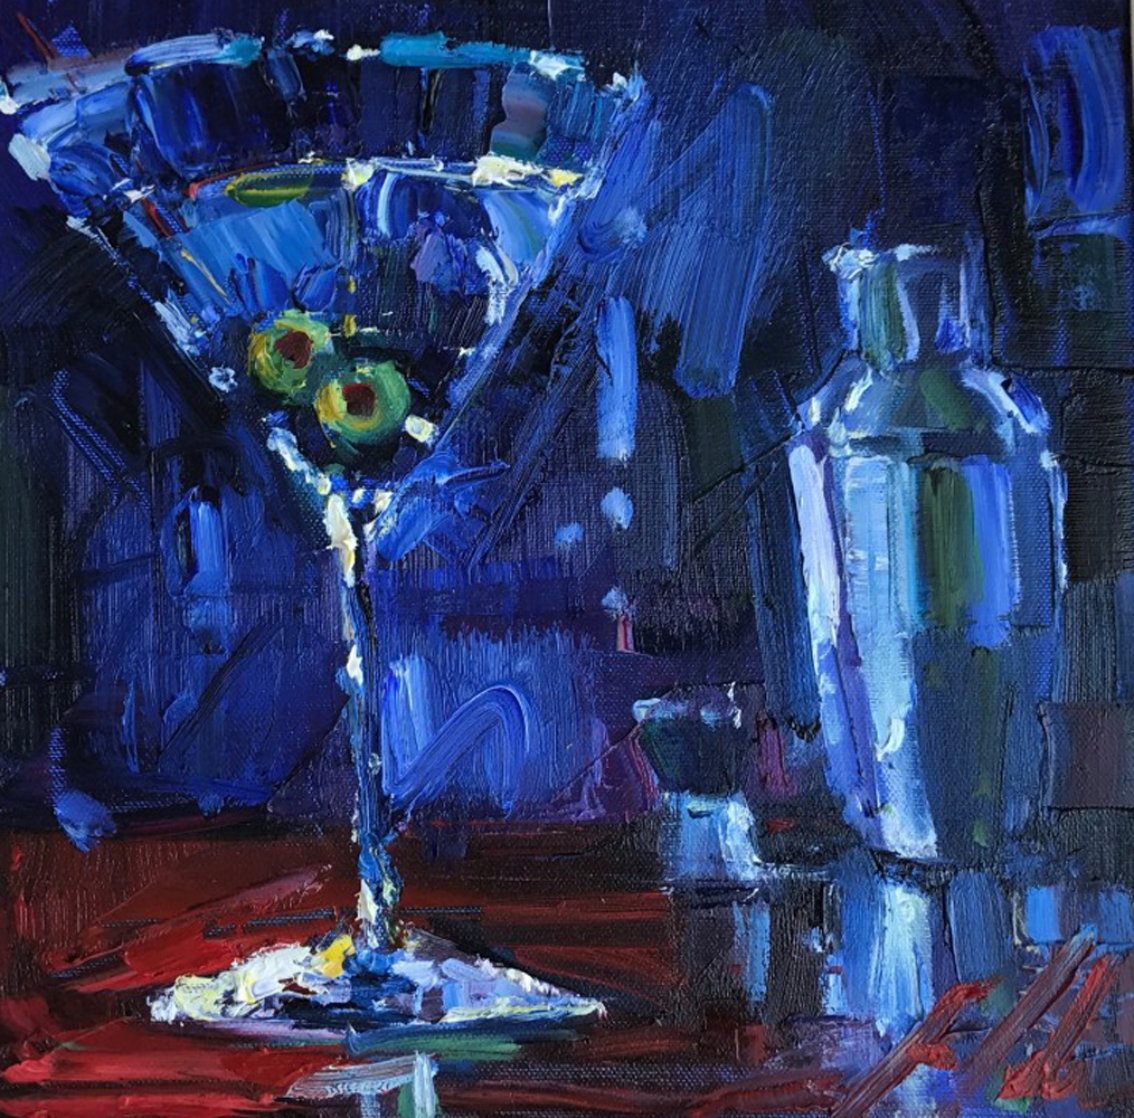 Shaken With Two Olives 2009 22x22 Original Painting by Michael Flohr